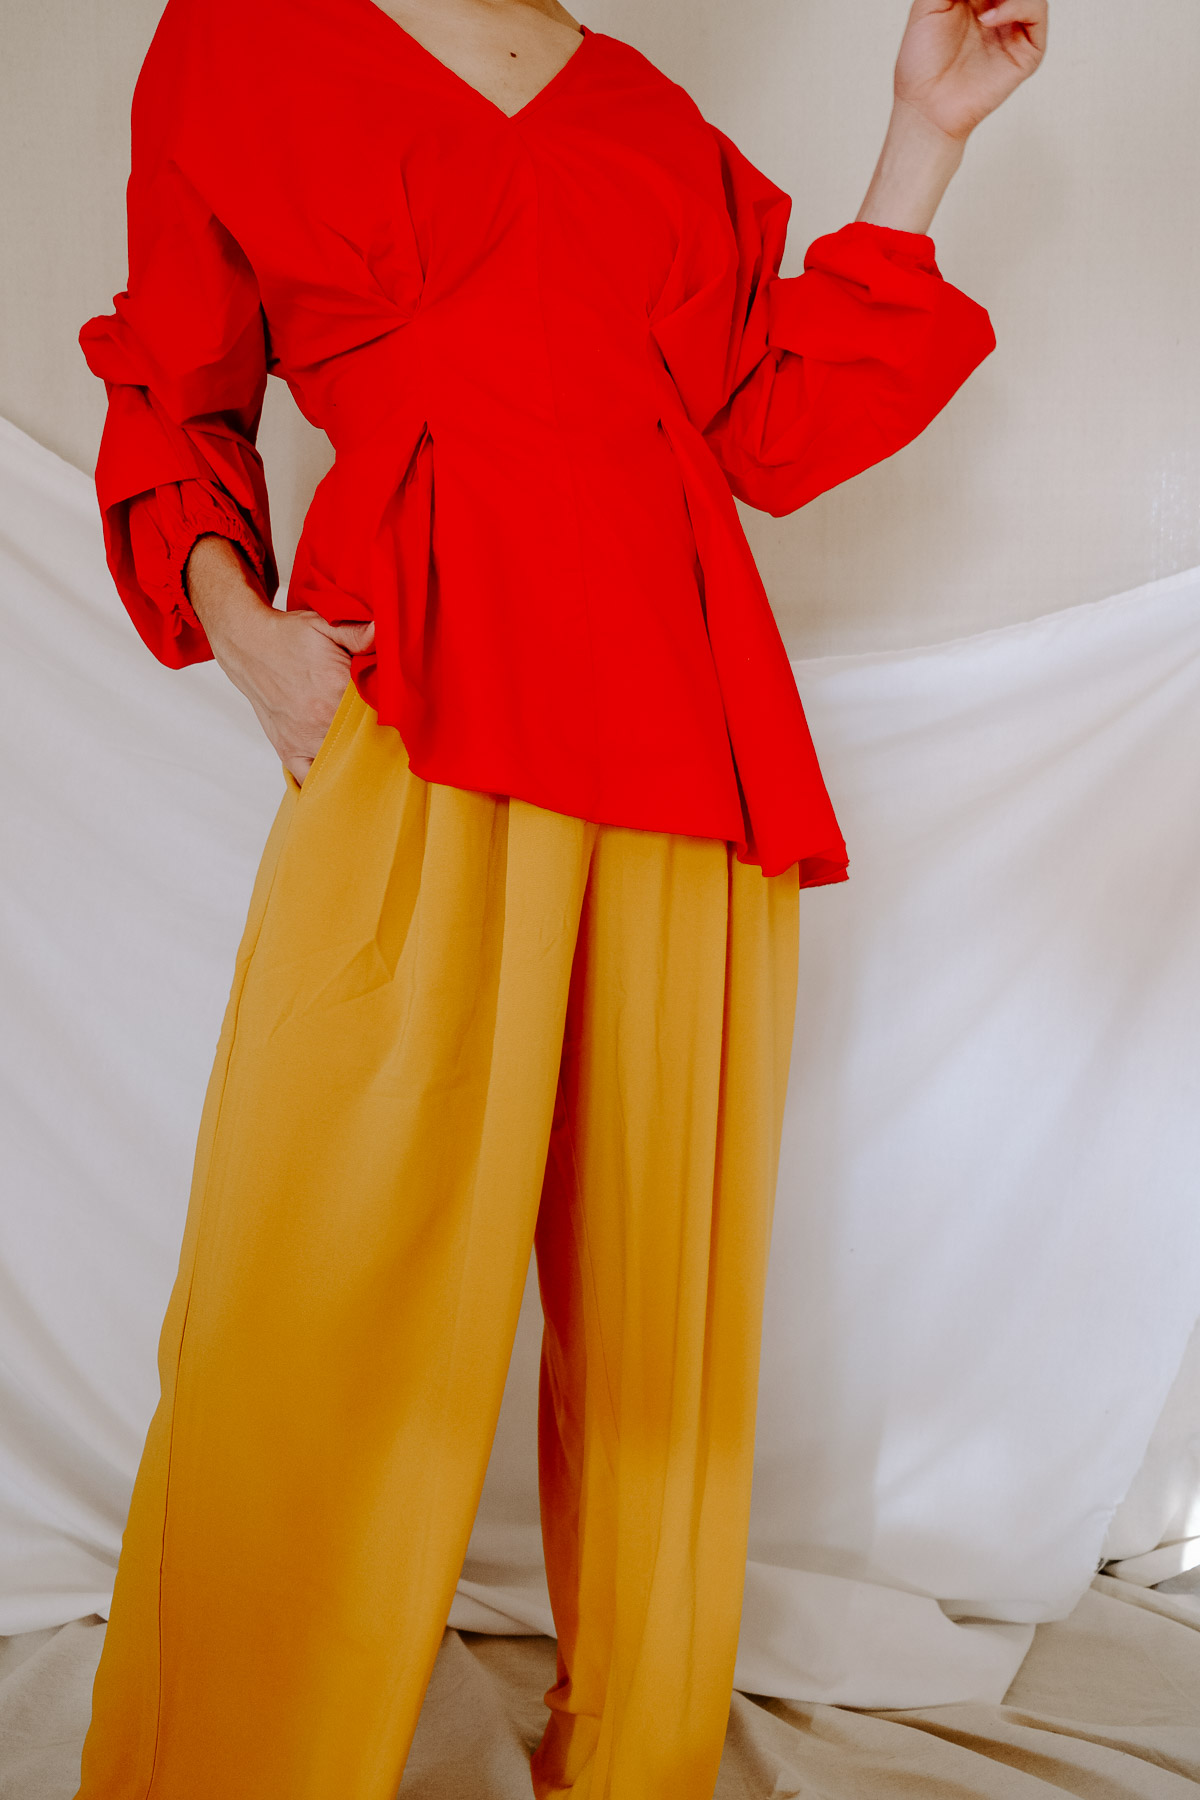 Does the warmer weather inspire you to try out some chic color combos this season? Here are 4 chic color combos to add to your spring and summer outfits! I love this red and yellow combo.